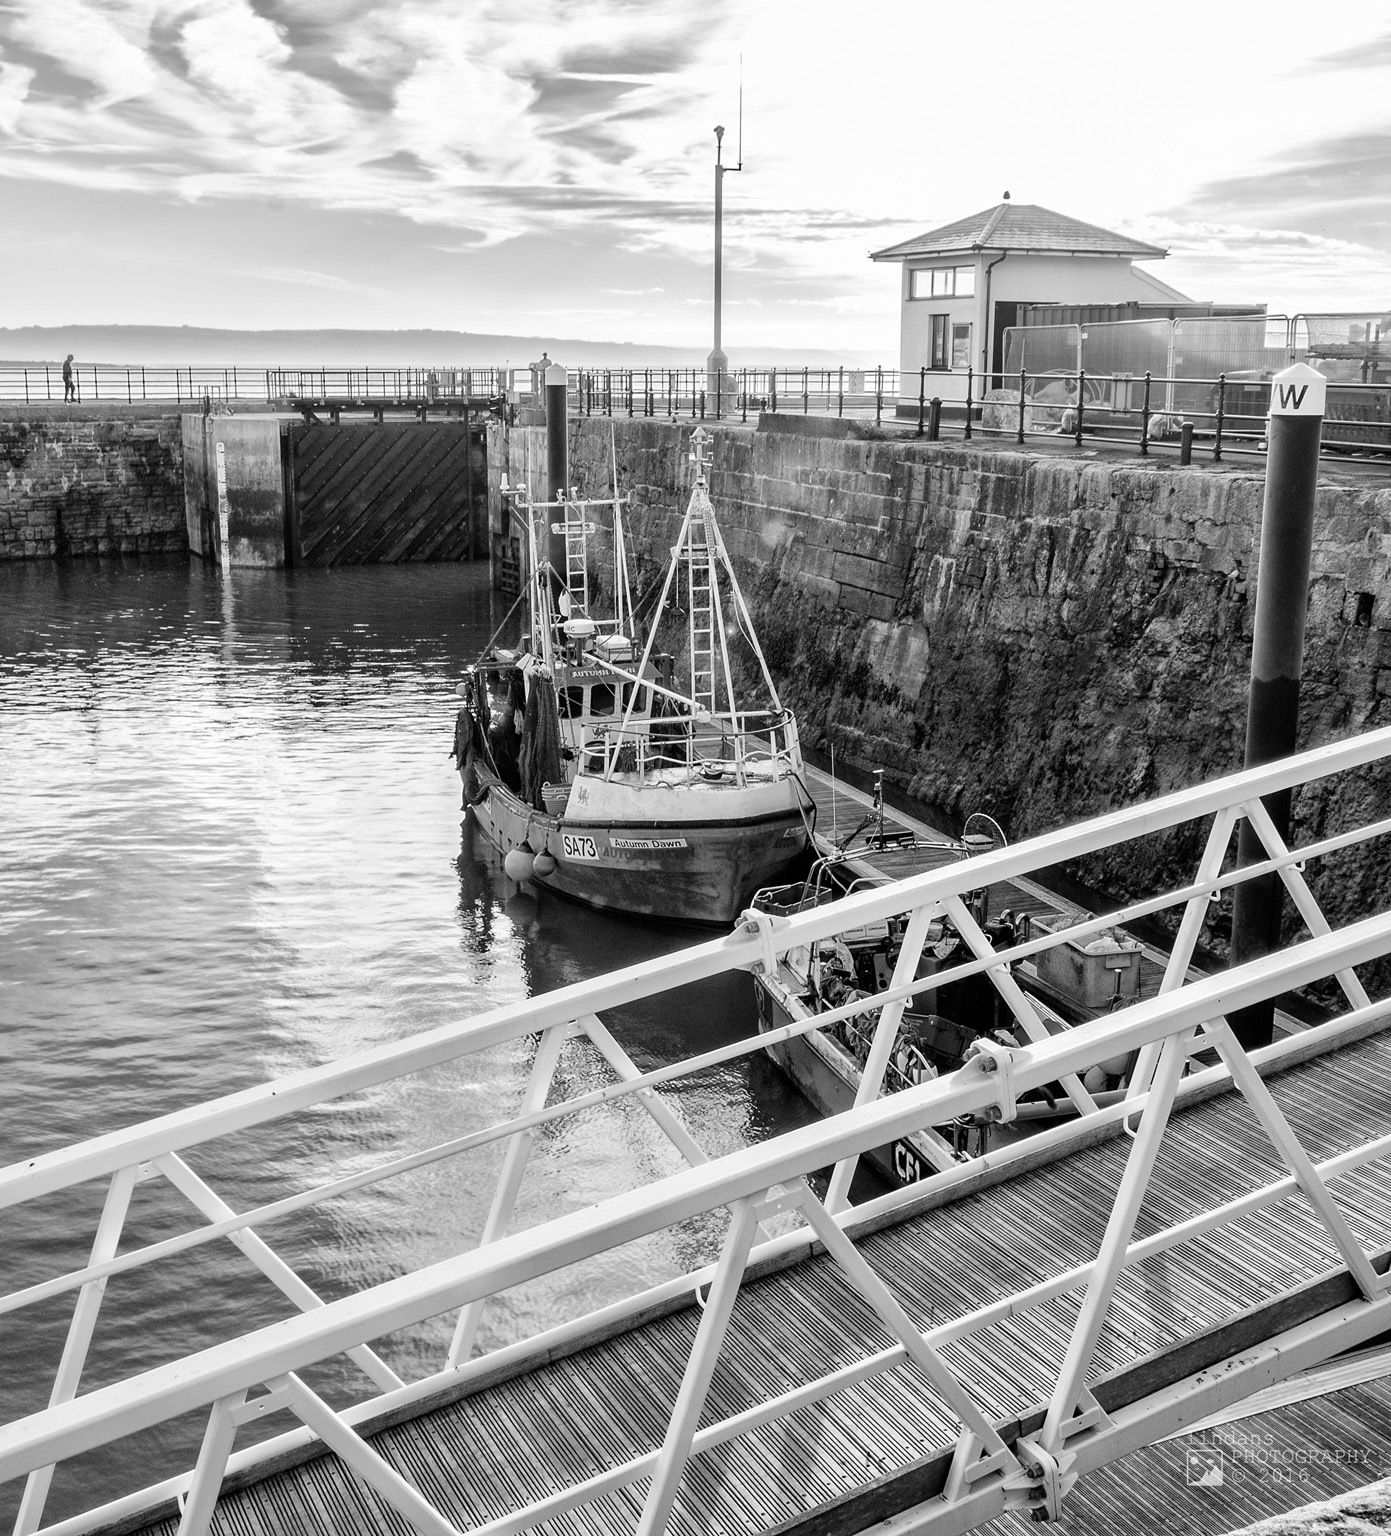 The Harbour, Porthcawl by lindans